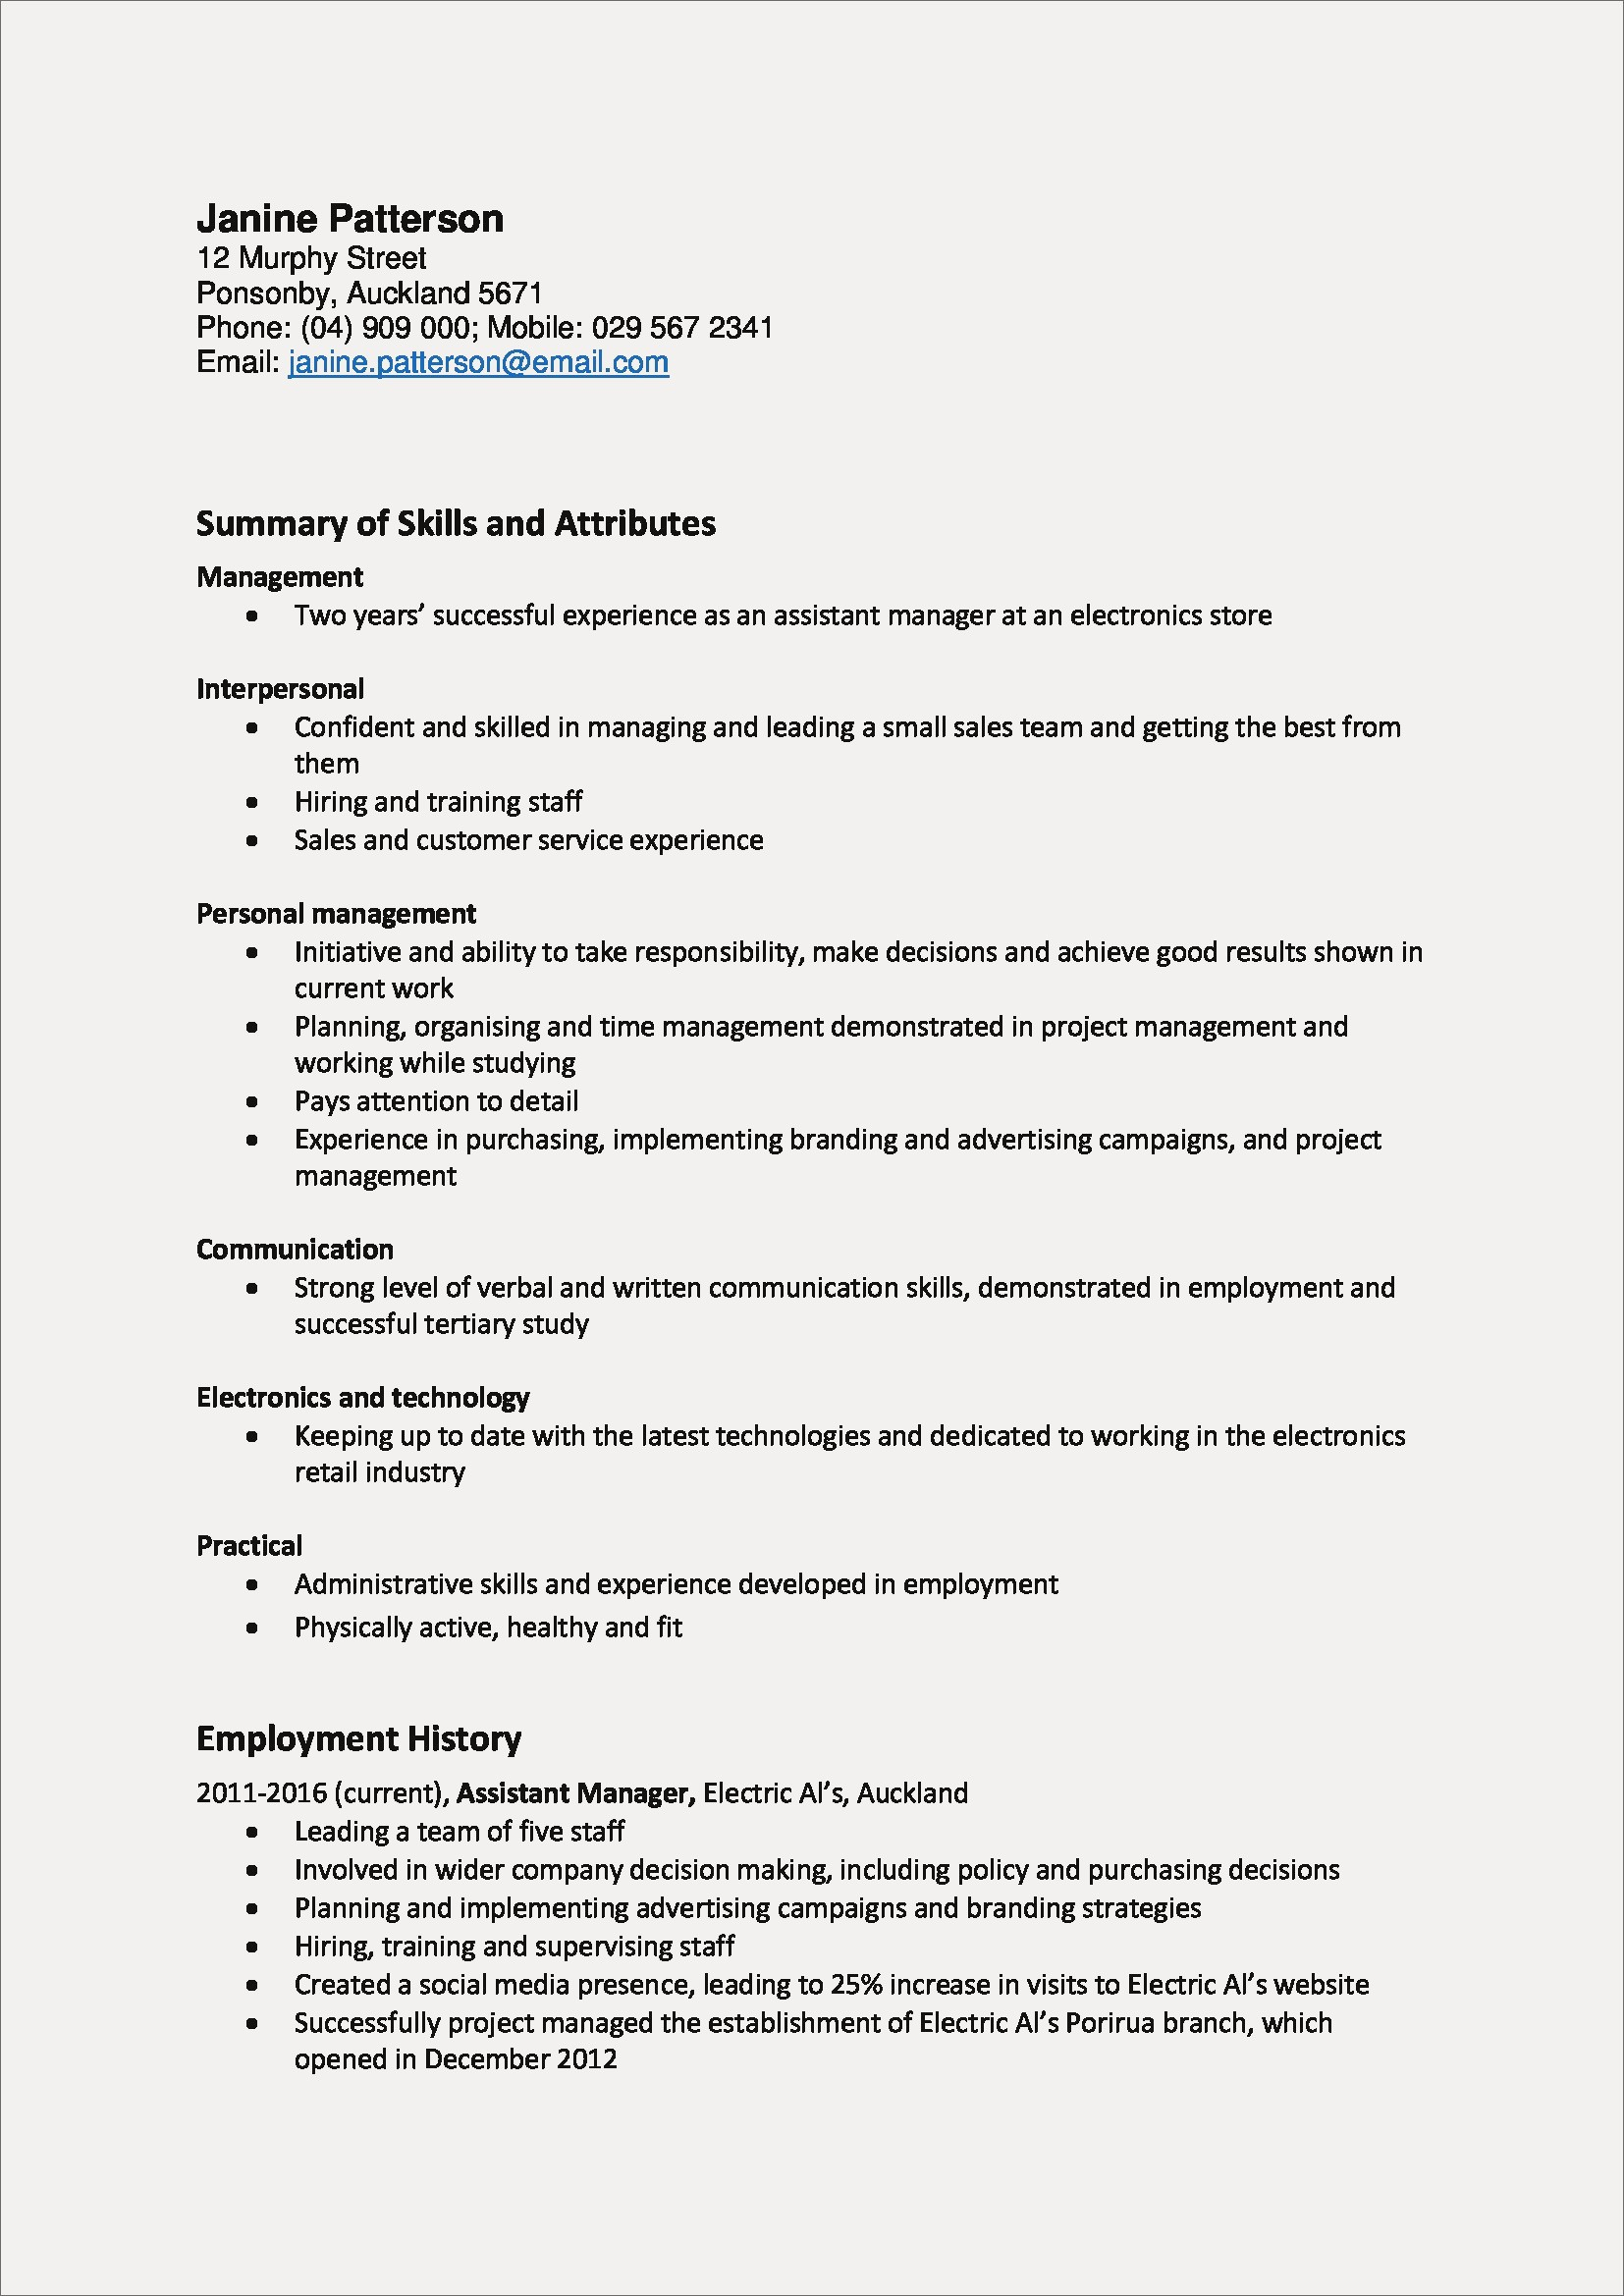 Resume Training New Employees - Skill Examples for Resume New New Skills for A Resume Fishing Resume